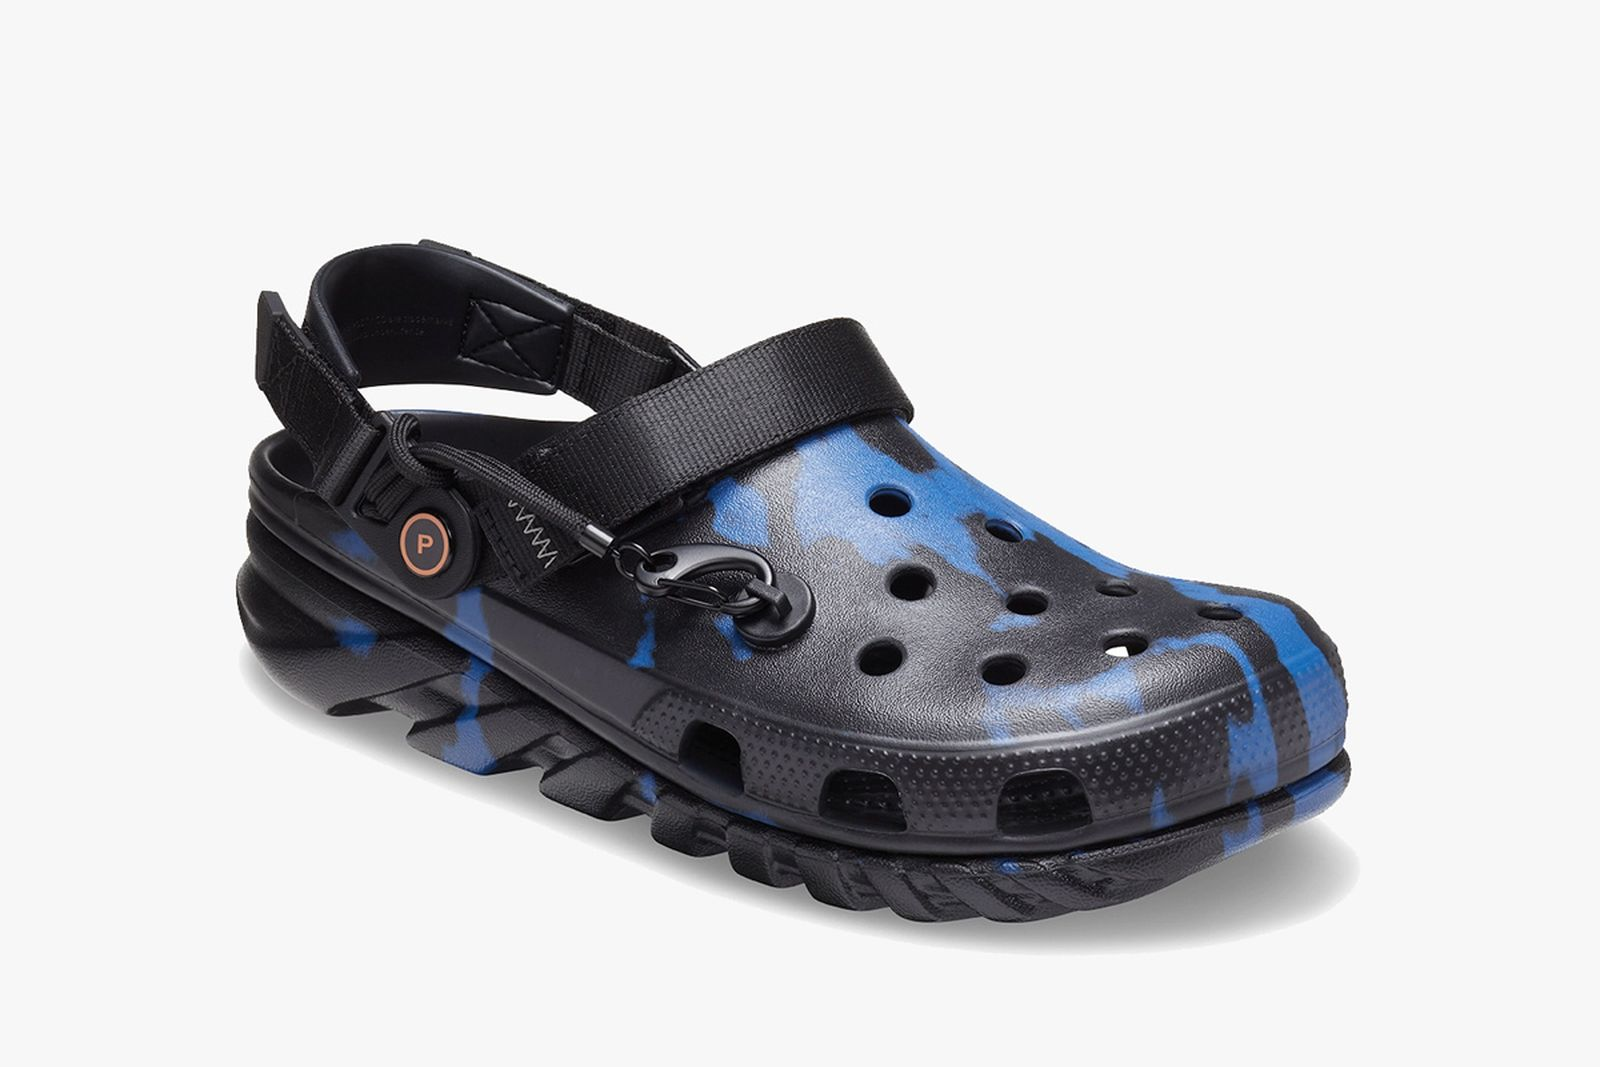 post-malone-crocs-duet-max-clog-release-date-price-04